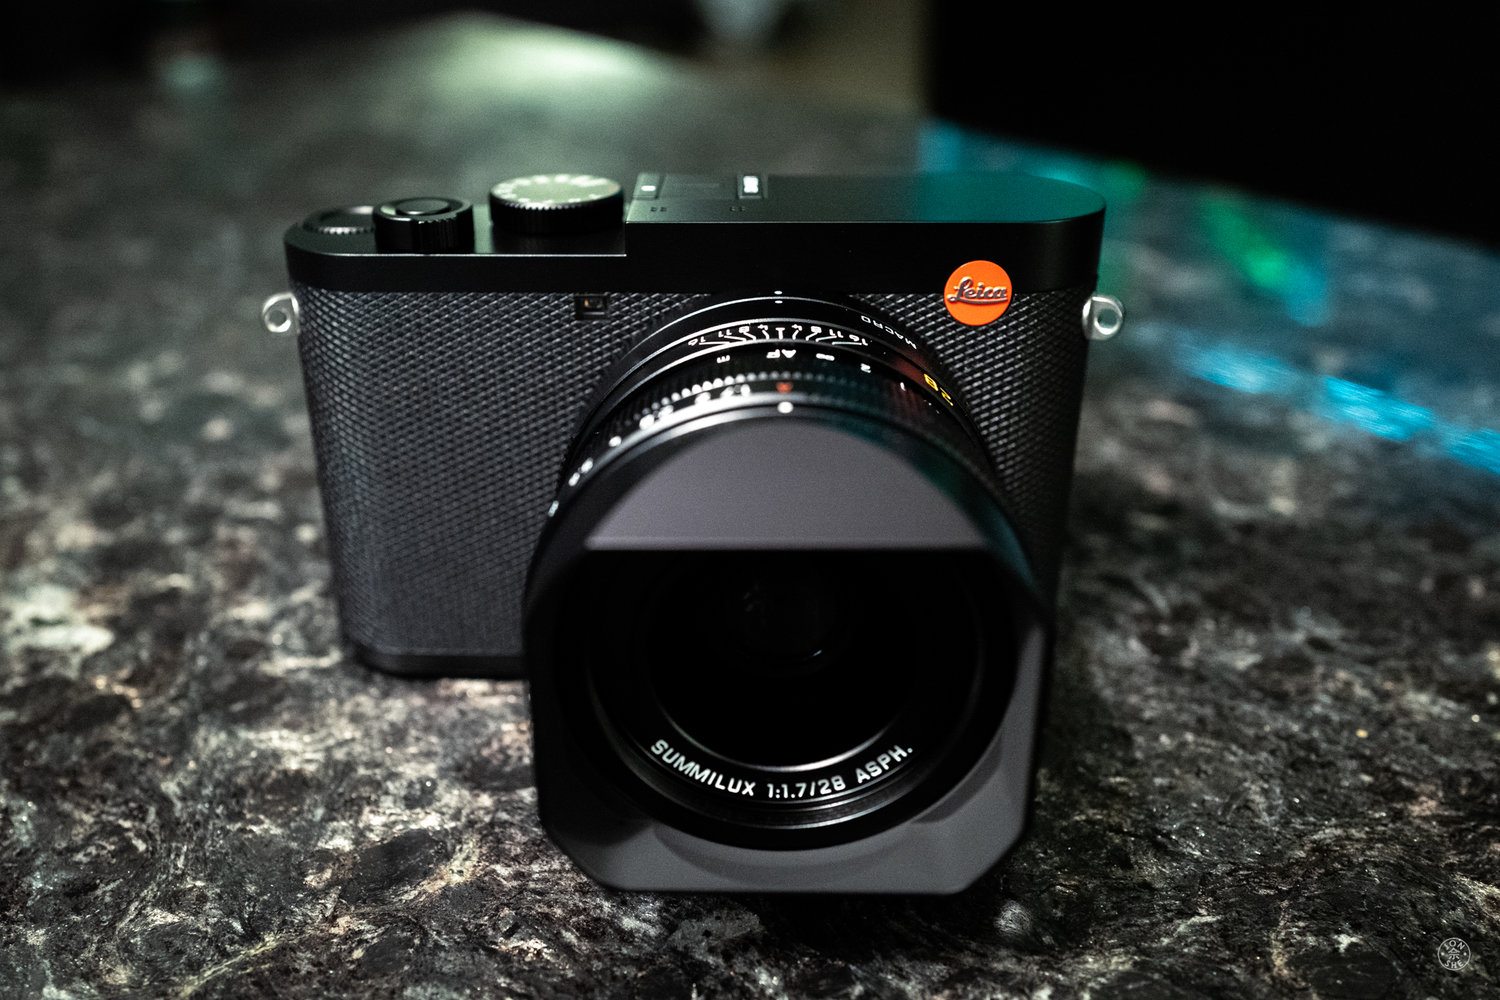 Top 10 LeicaRumors posts for March 2019 - Leica Rumors